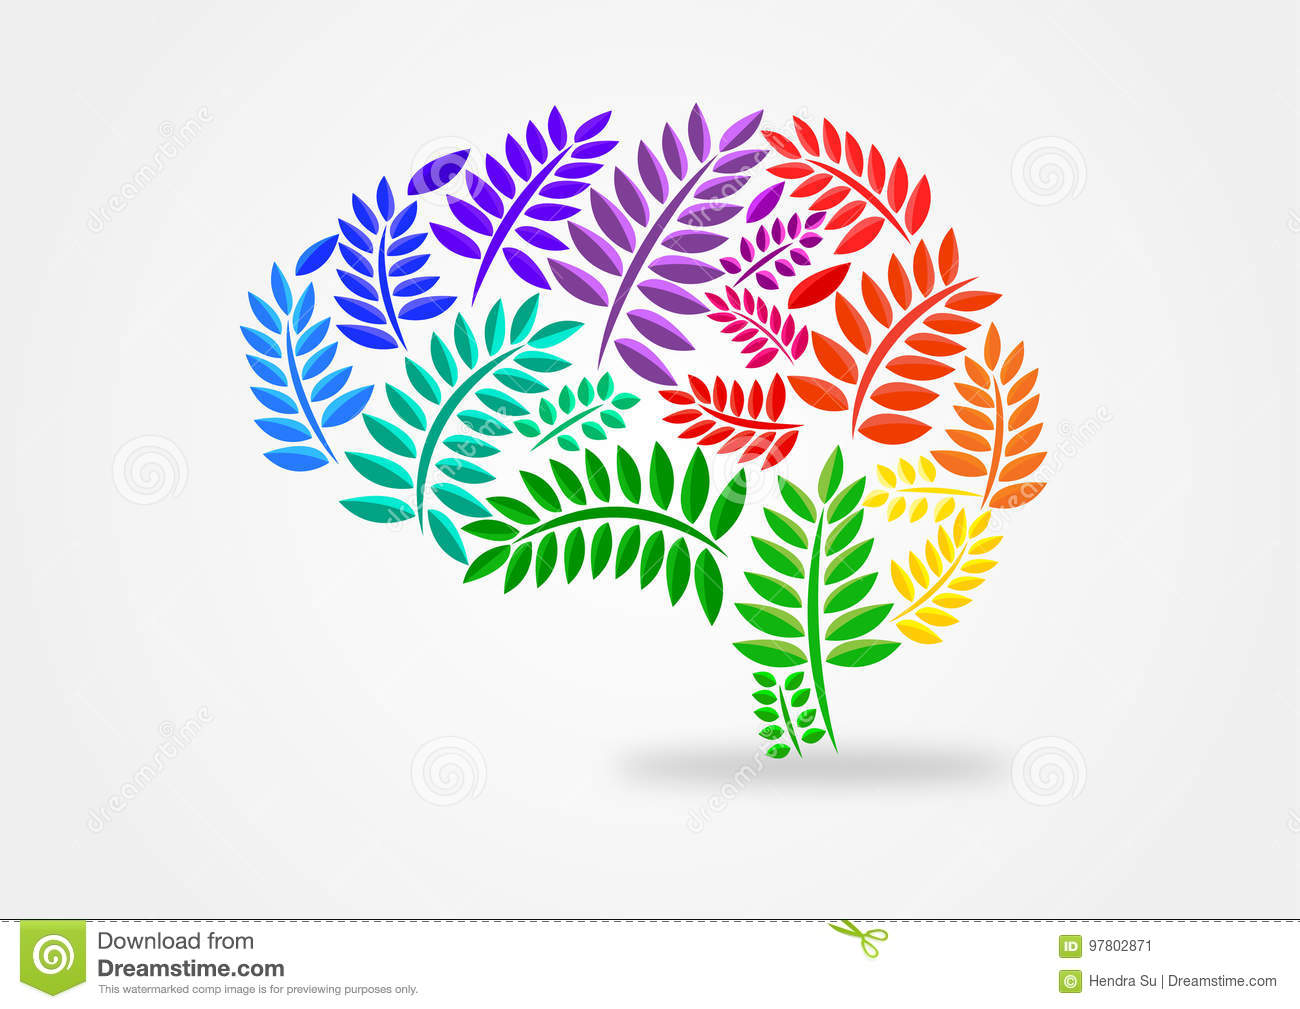 Brain illustration concept with leaves theme